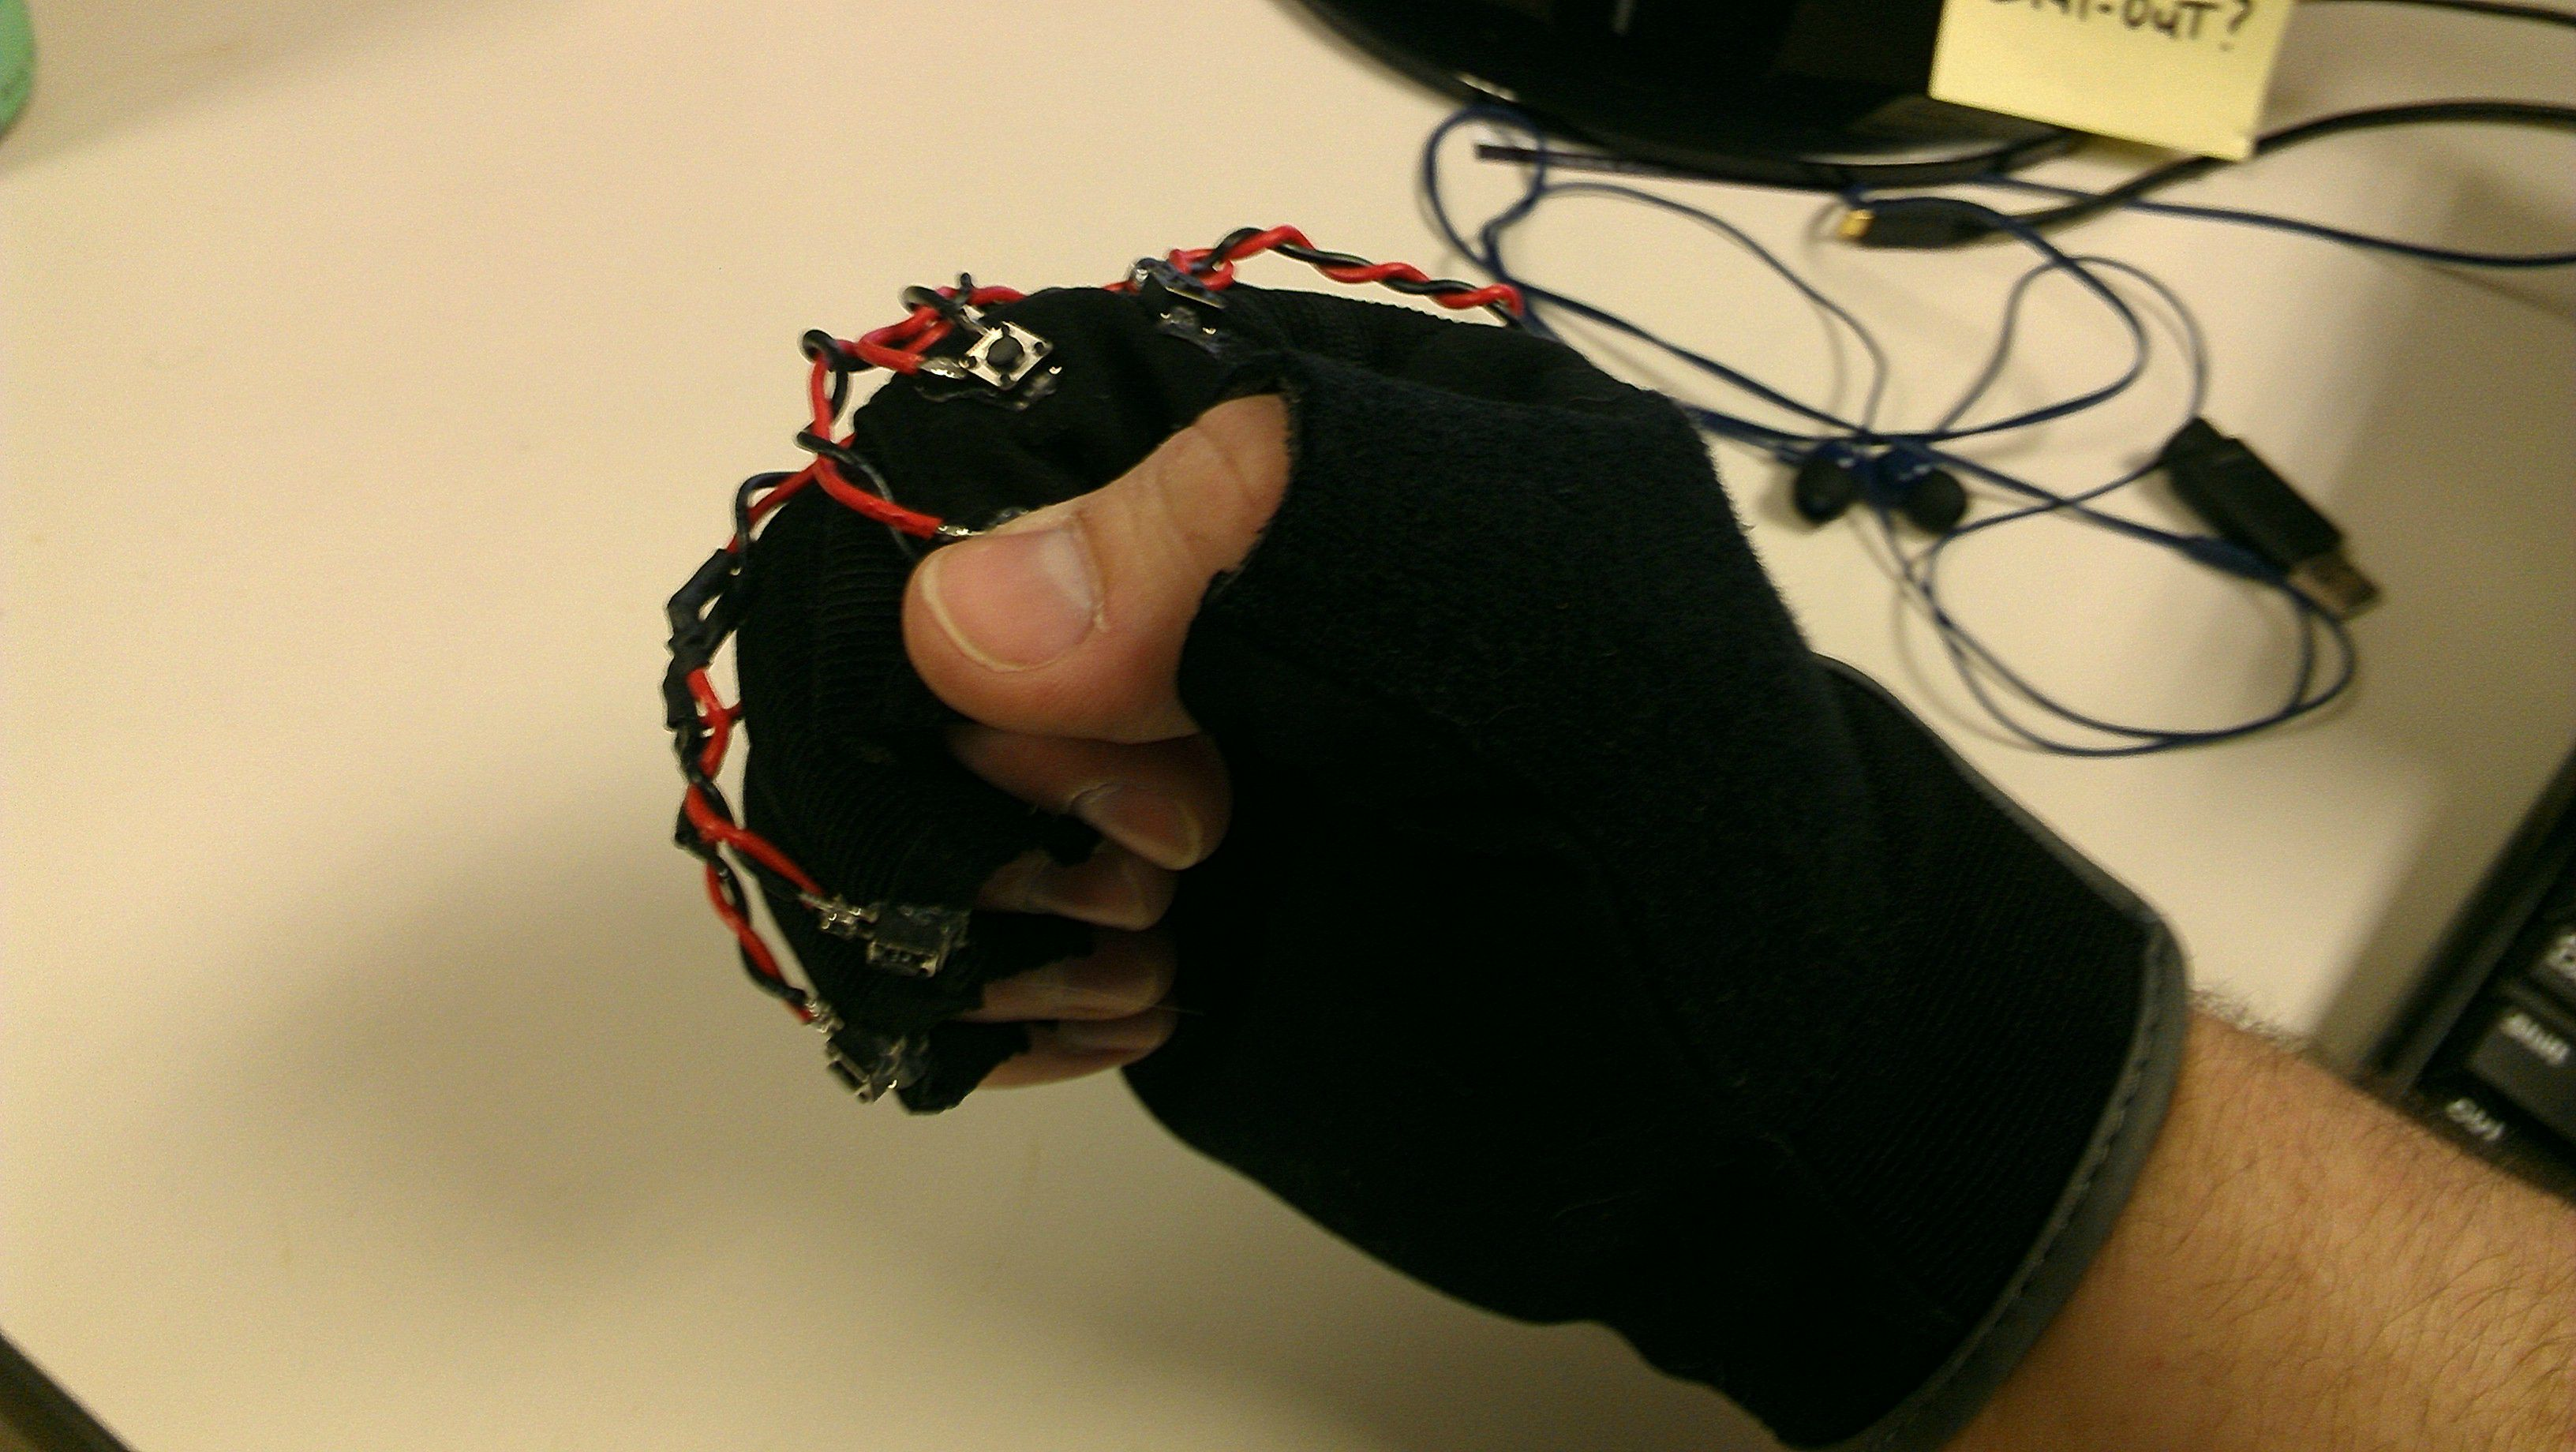 Flickr - 09 - Data Glove 2